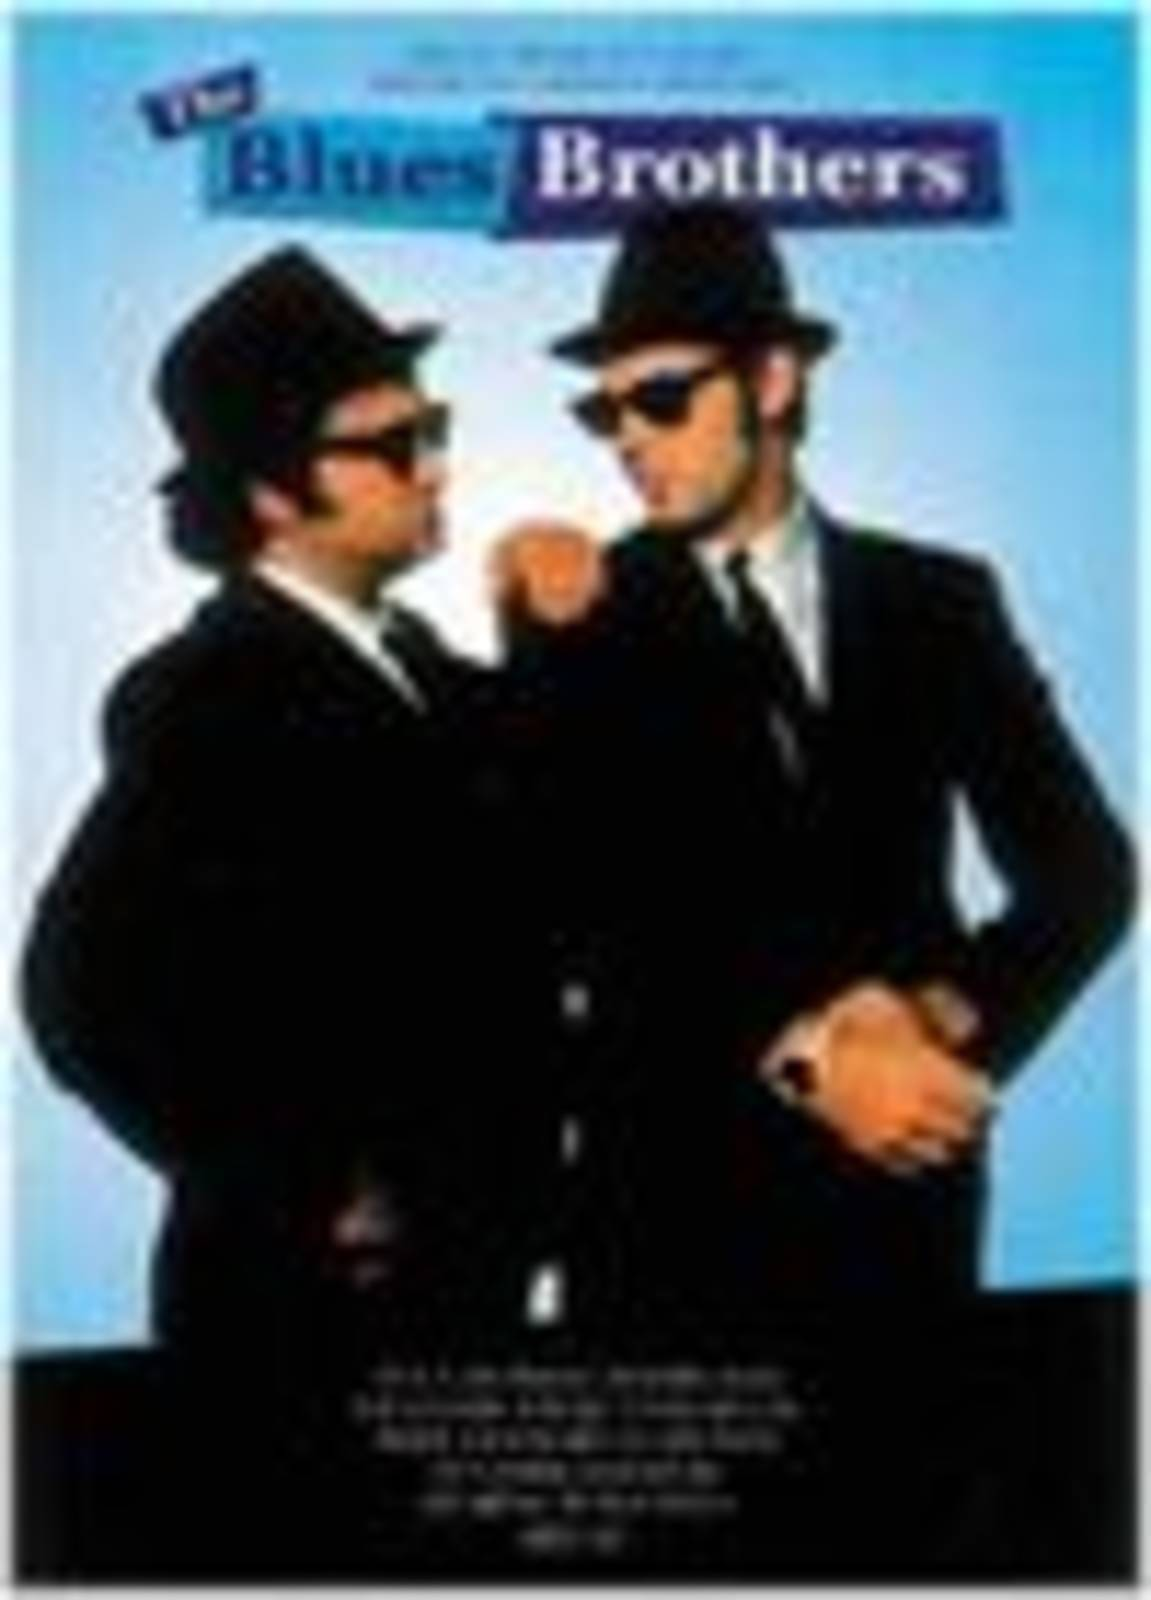 Kino: Blues Brothers extended Version